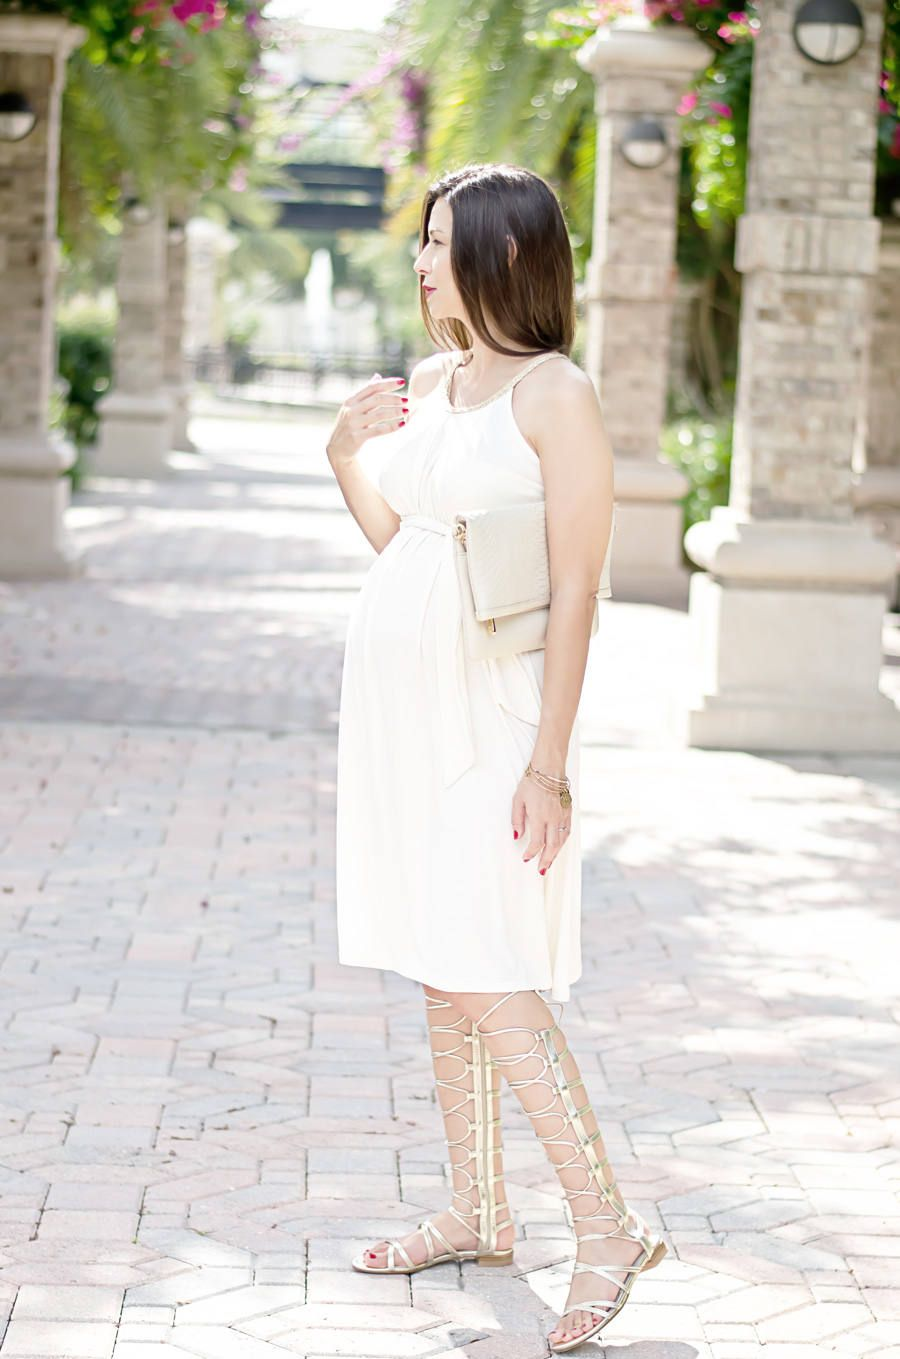 Shop rent consign gently used designer maternity brands you discover the ultimate collection of maternity dresses at enviedefraises ombrellifo Choice Image